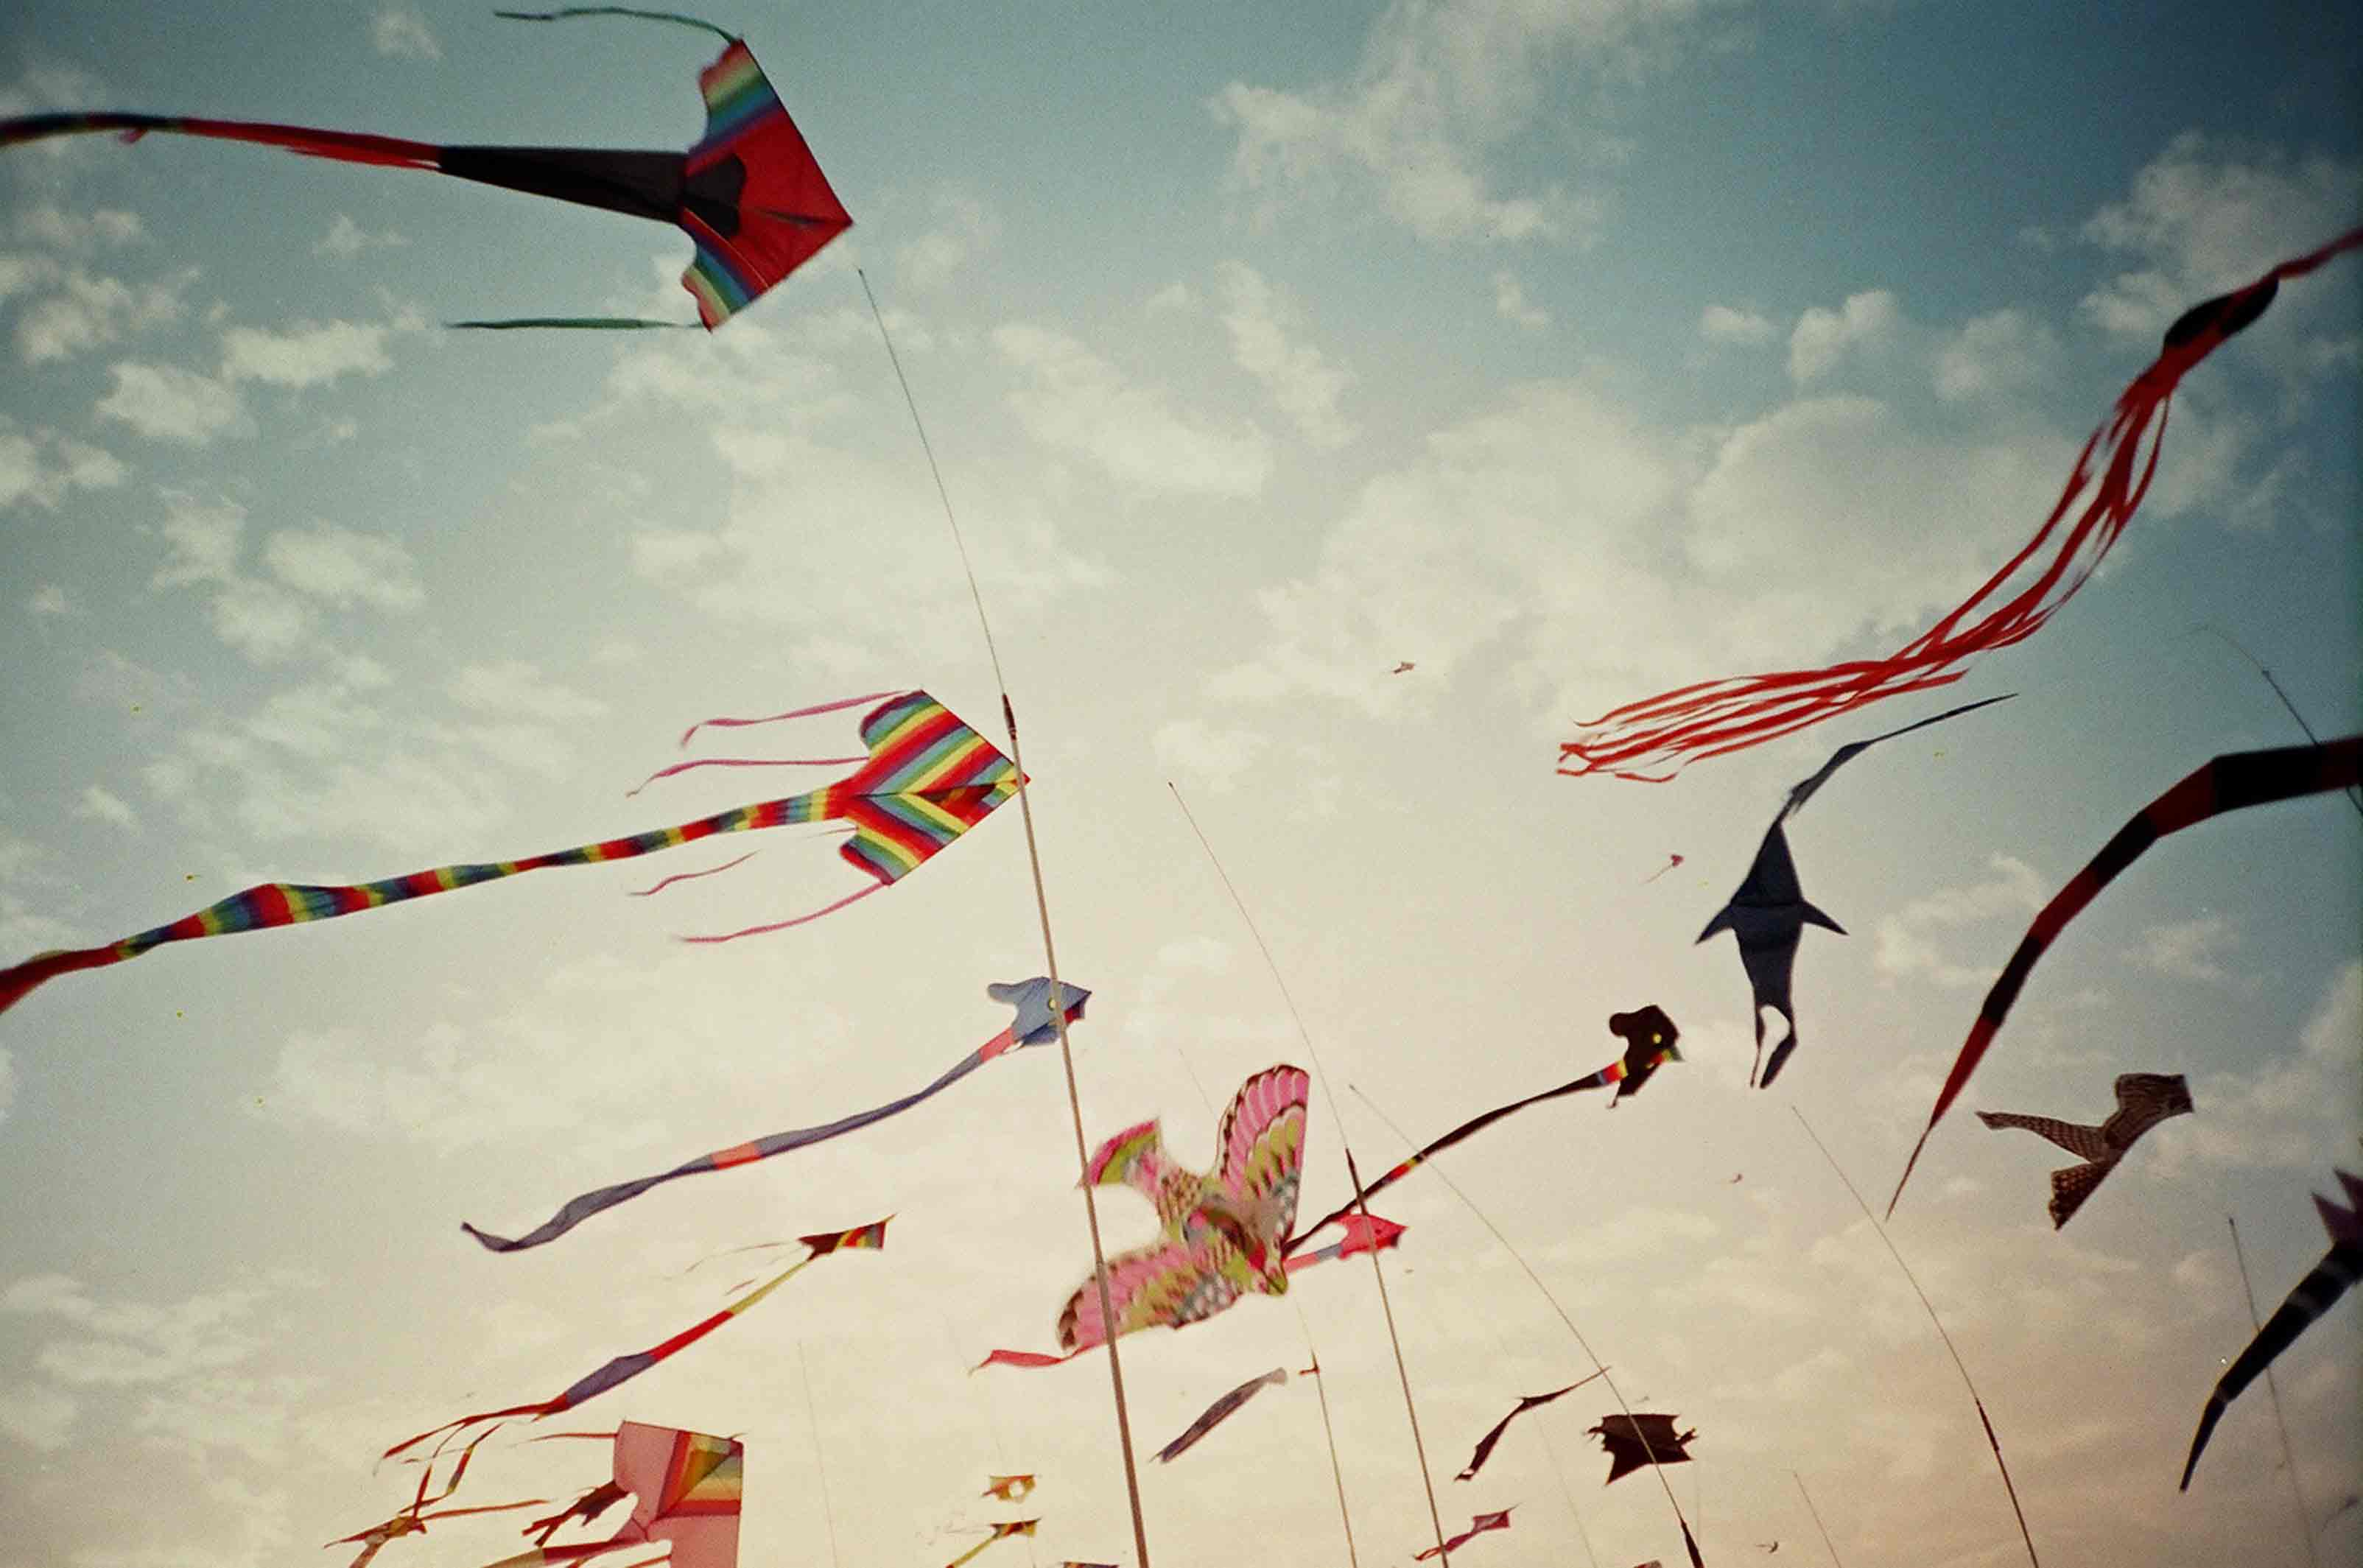 kite flying and business essay Kite flying is one of the most popular sports and festival in india according to the greek literature, kite-flying dates back to as old as 14th century and later came to india and other asian countries.